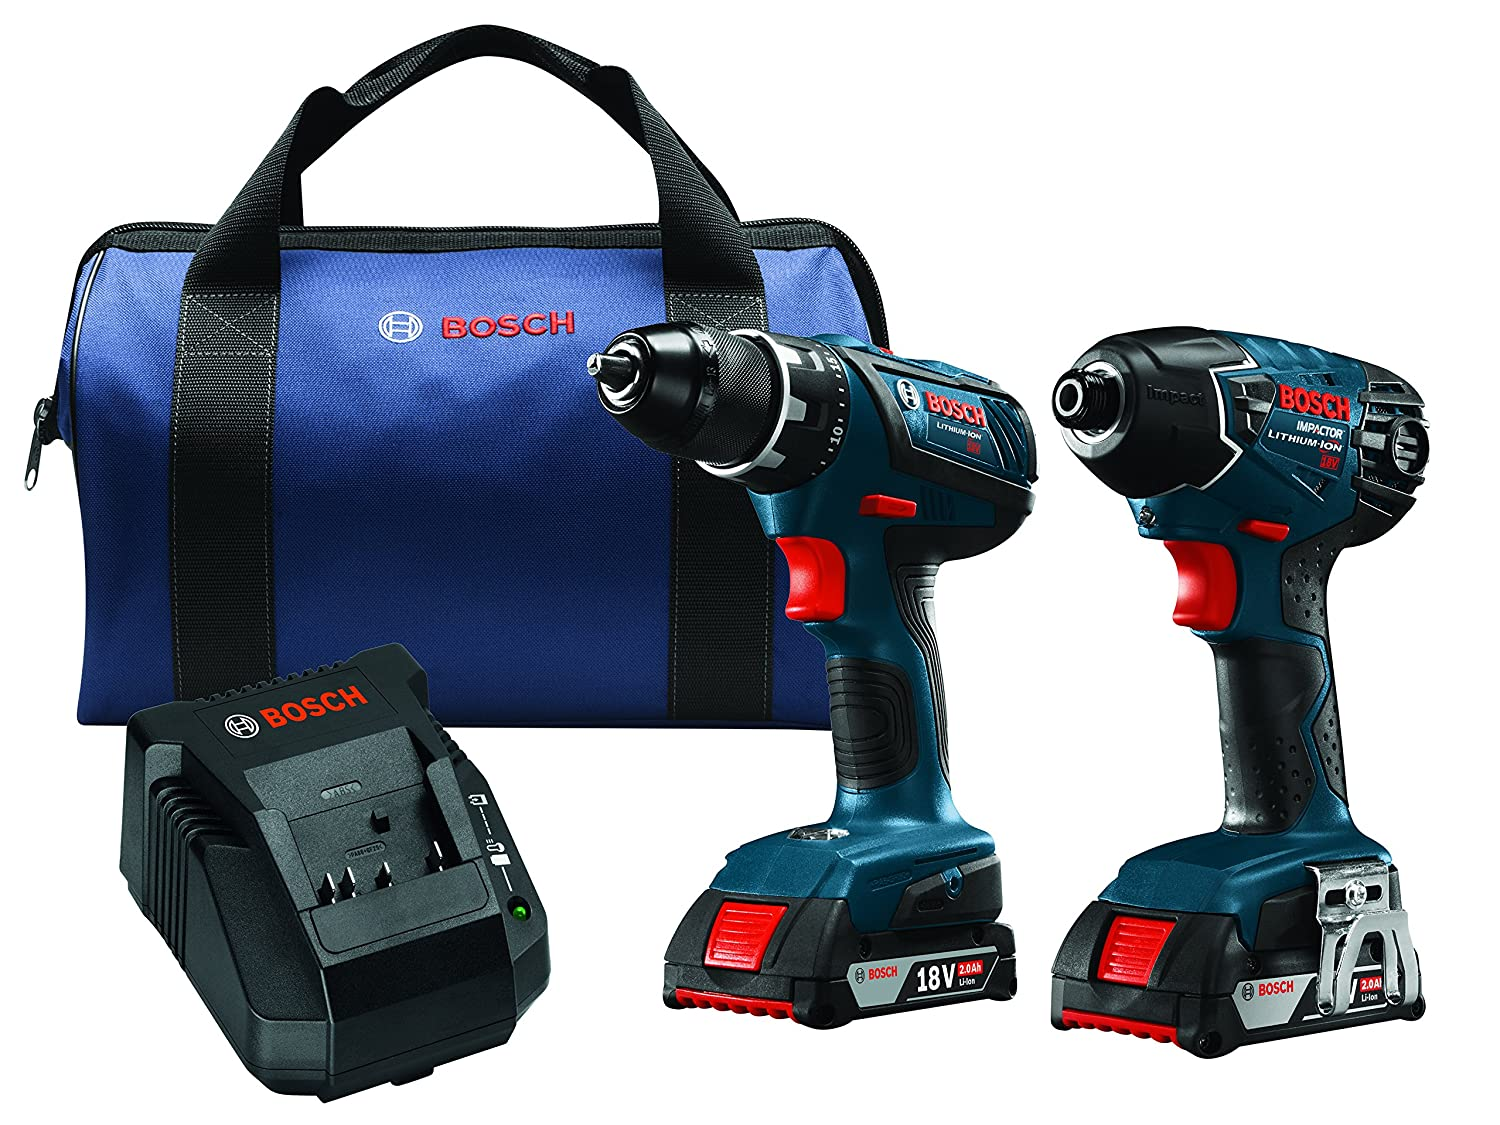 Bosch CLPK232A-181 18V Lithium-Ion Cordless Drill Driver/Impact Combo Kit Review